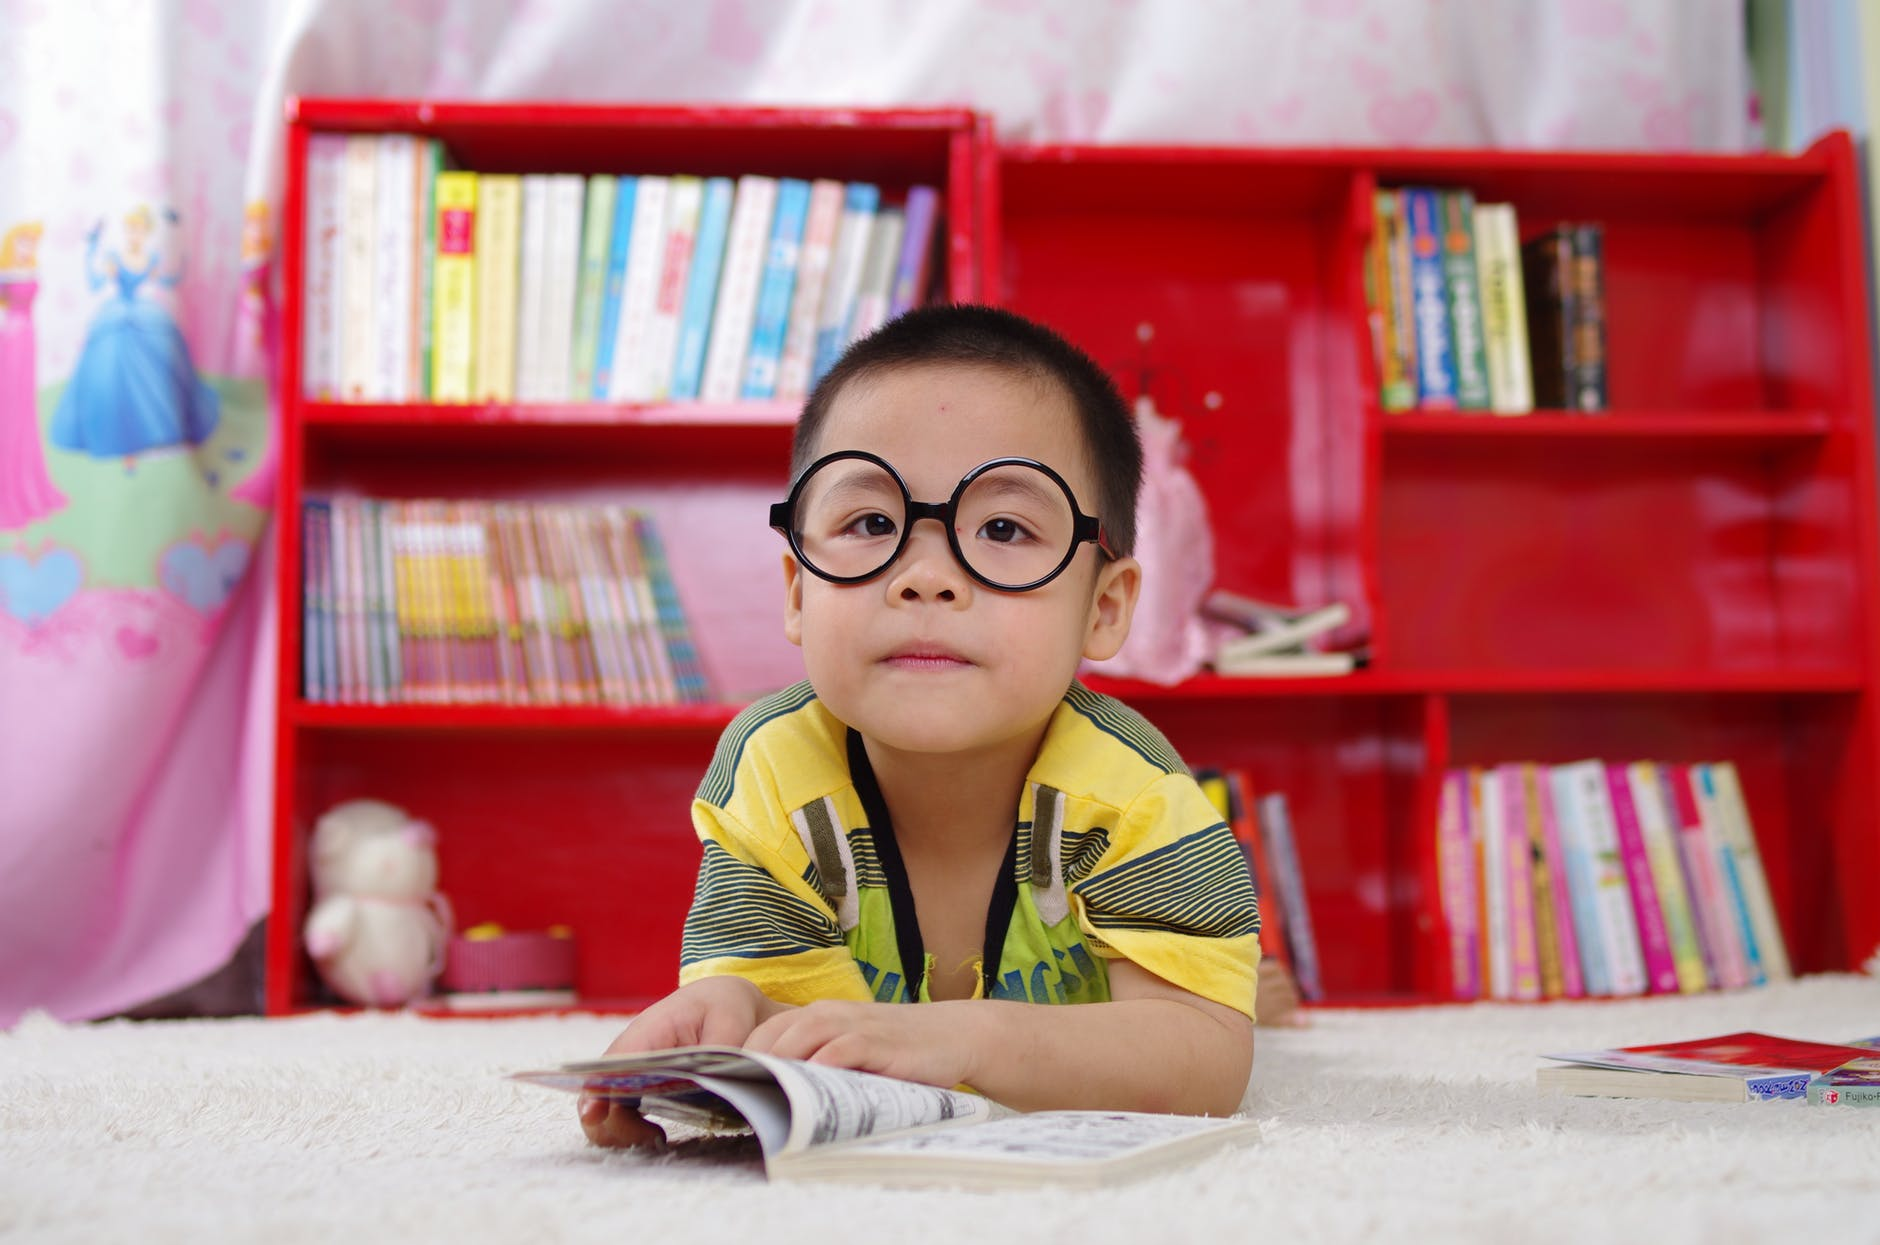 Young boy wearing glasses and reading a book